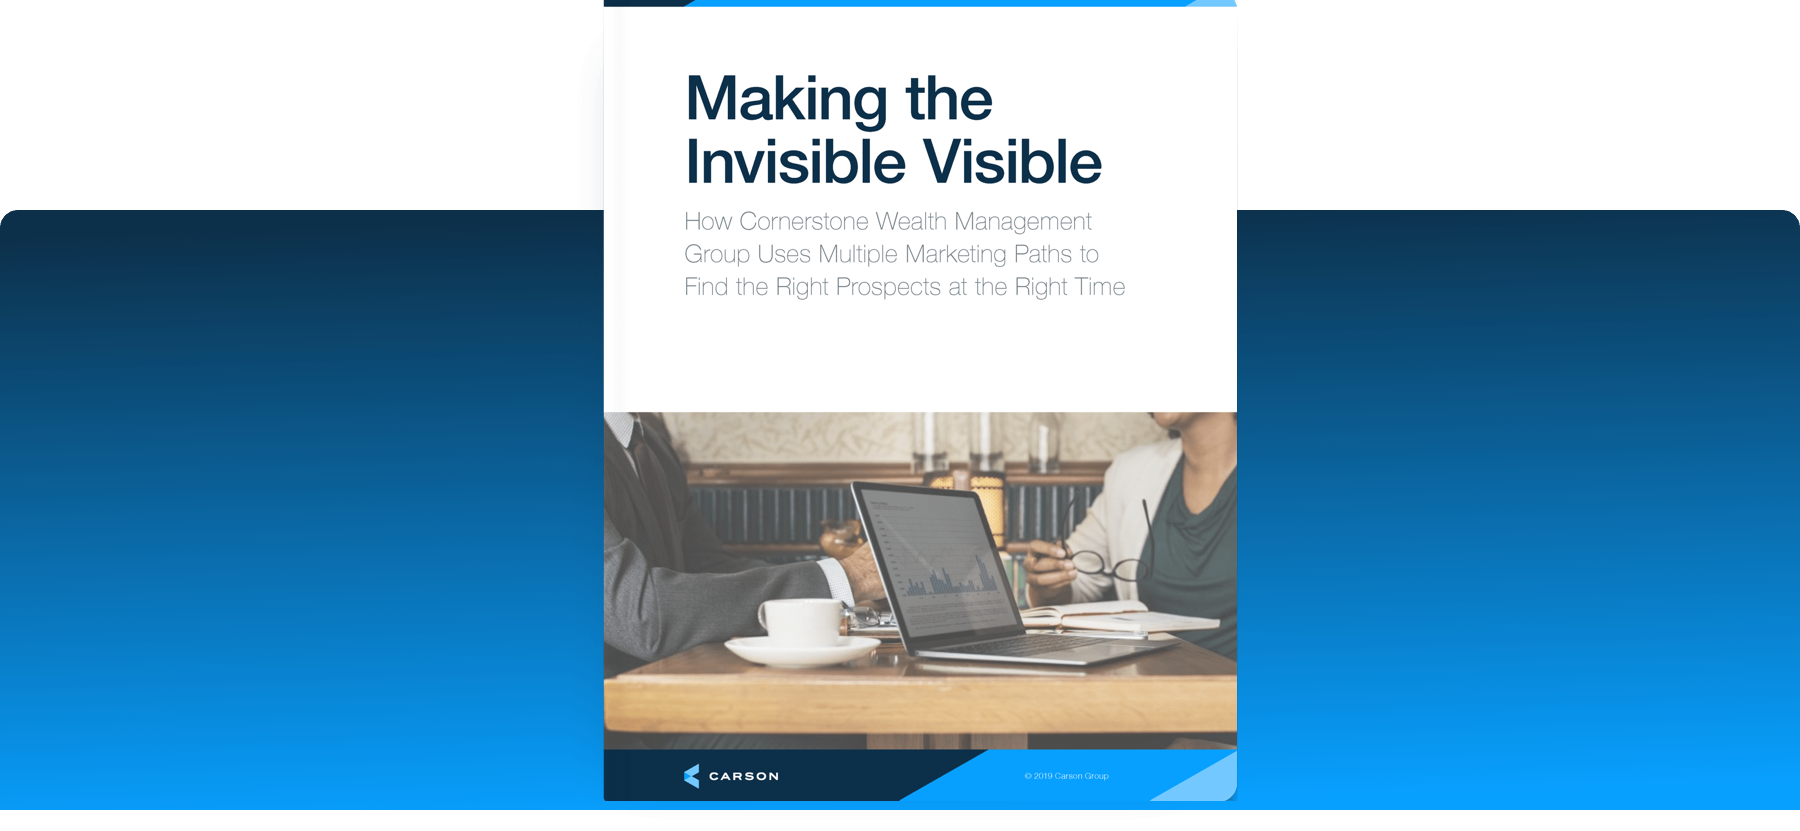 Making the Invisible Visible2